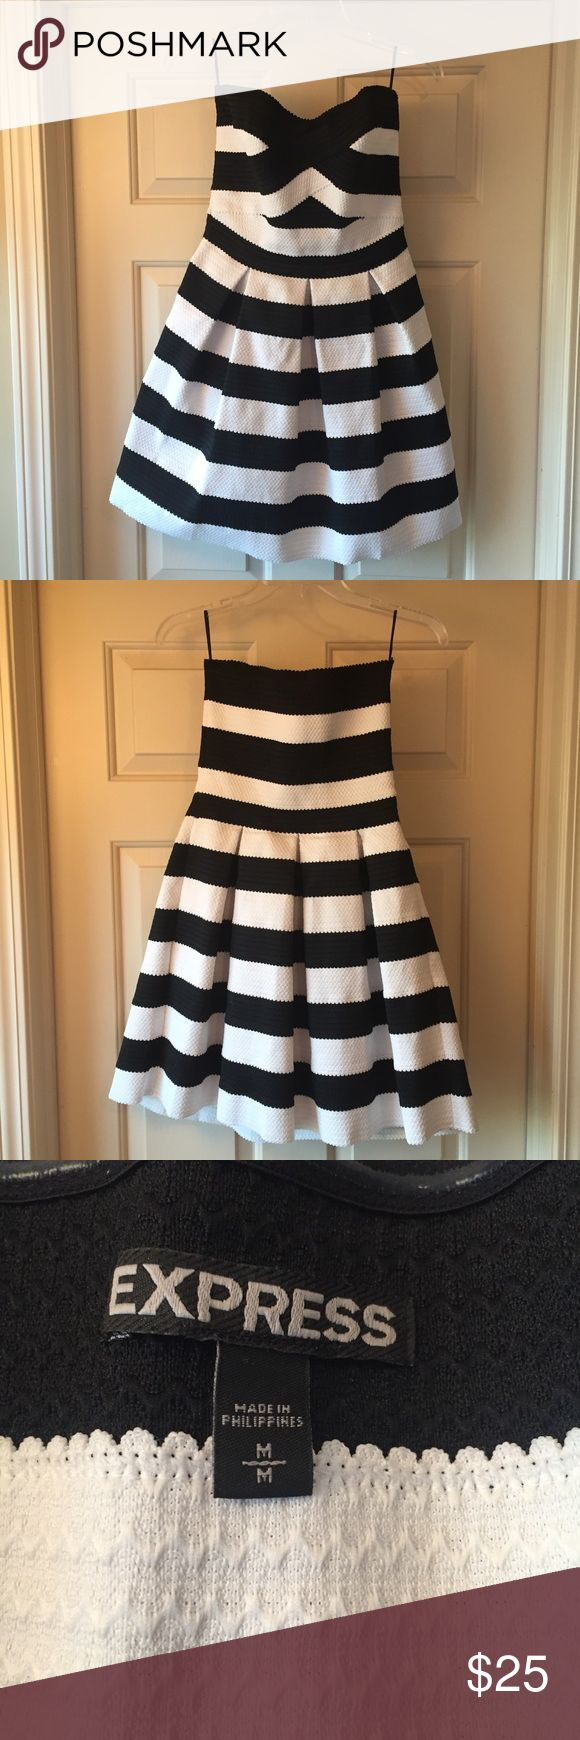 The dress is white - Black And White Dress